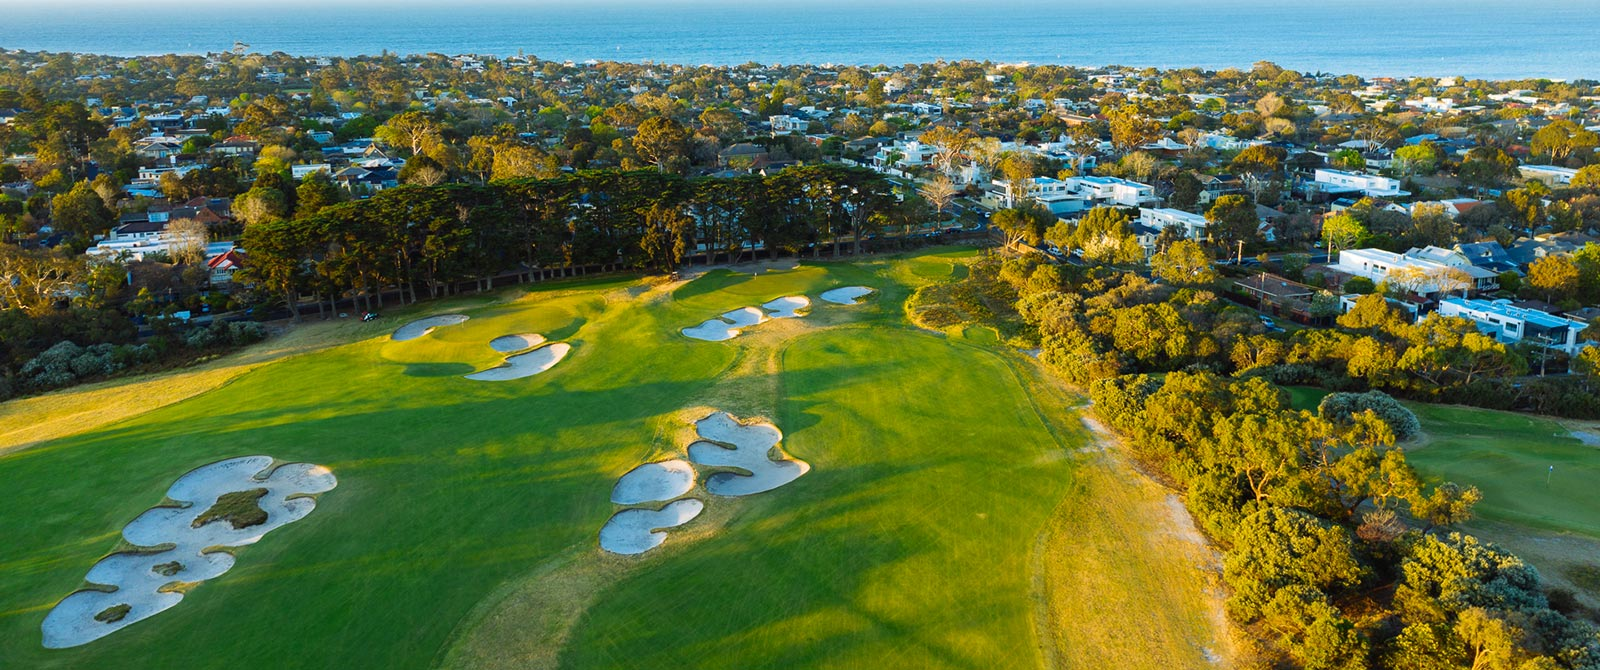 Aerial View of Royal Melbourne Golf Club - Sandbelt Golf Courses Australia